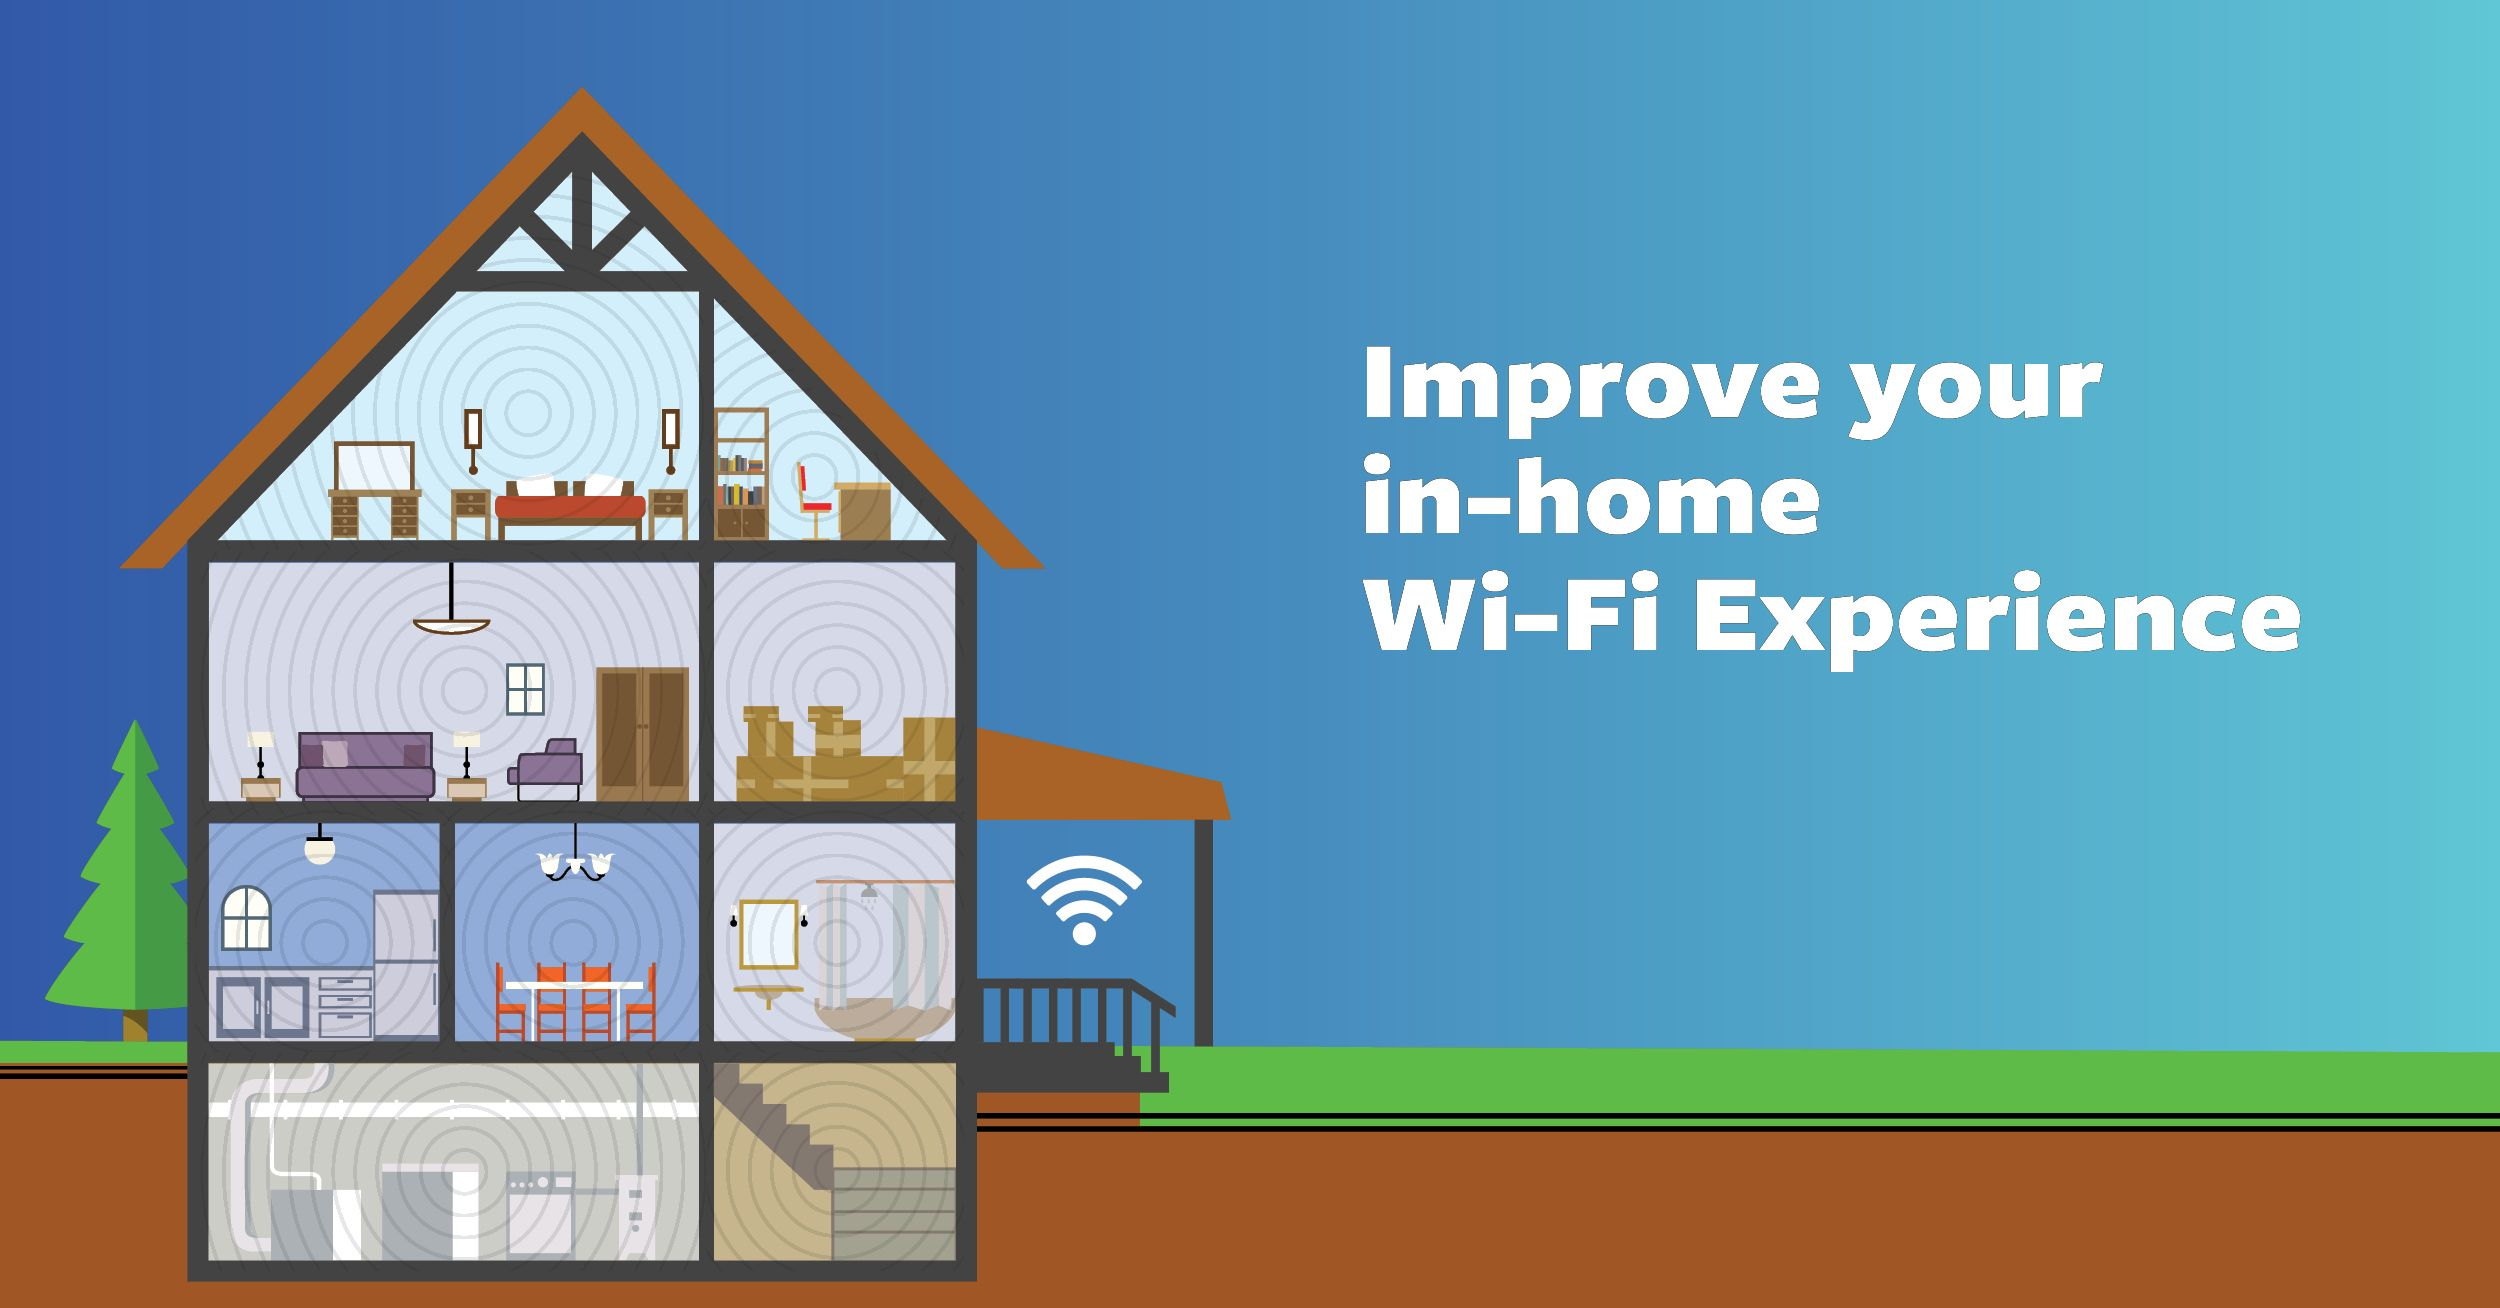 Introducing Advanced Wi-Fi ad